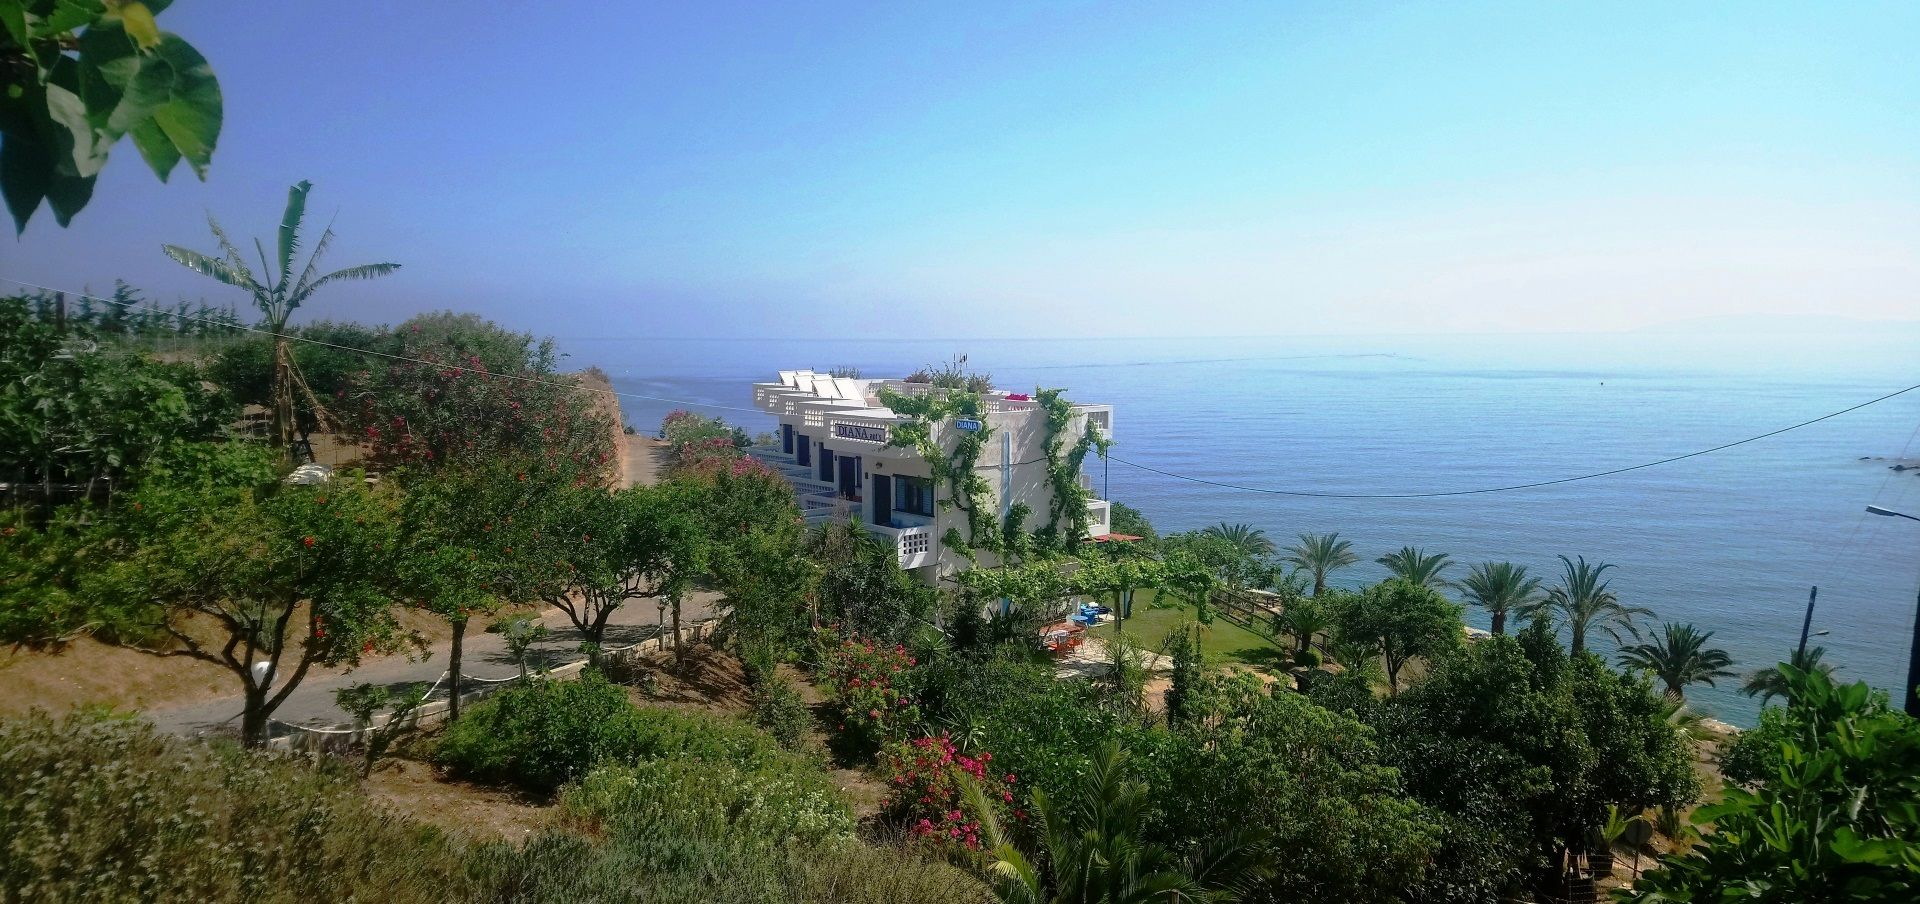 SELF CATERING APARTMENTS AGIA PELAGIA CRETE